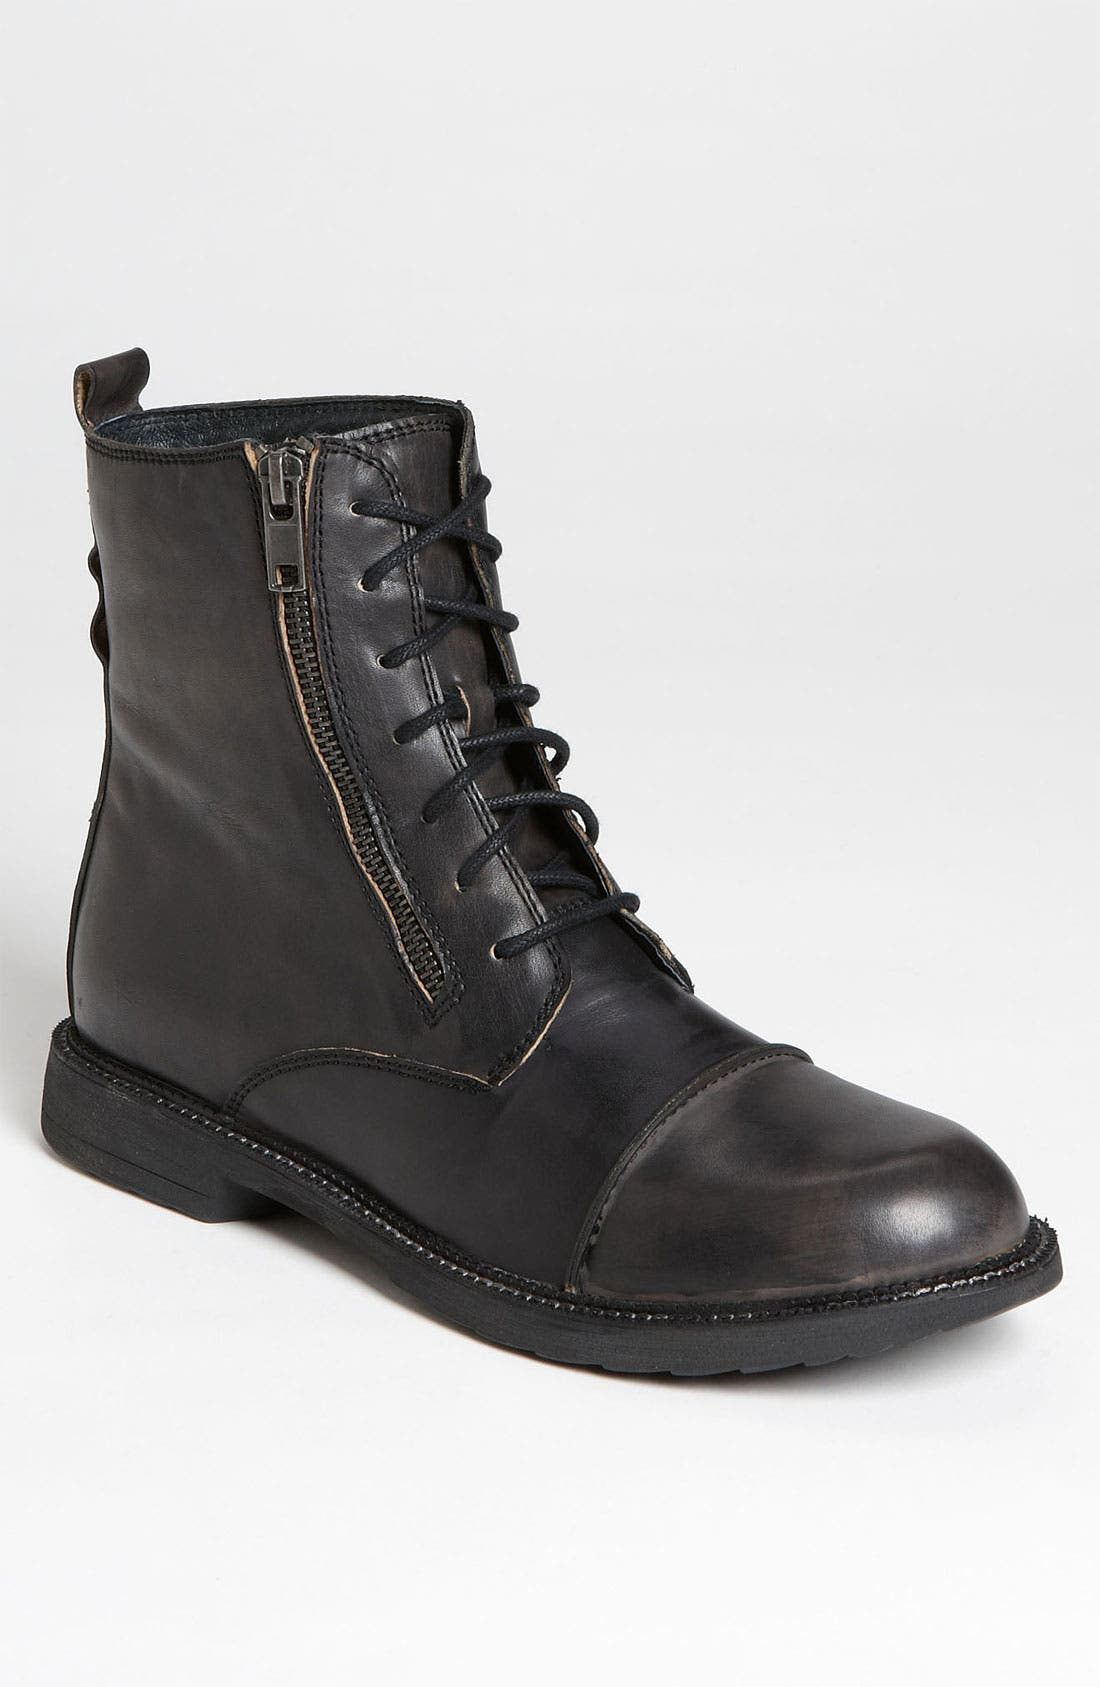 Main Image - Bed Stu 'Patriot' Cap Toe Boot